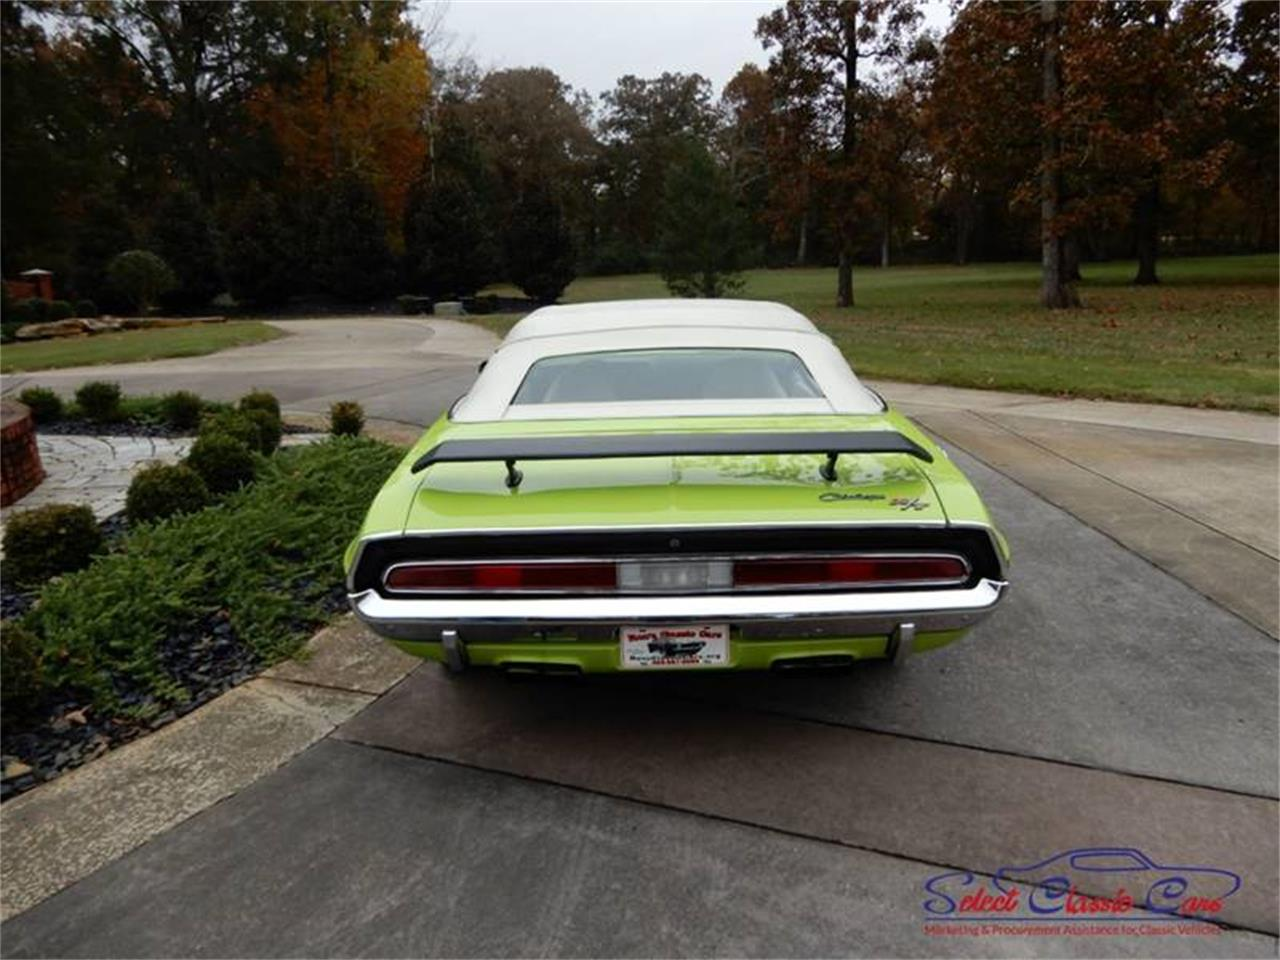 Large Picture of 1970 Dodge Challenger located in Hiram Georgia - $125,000.00 Offered by Select Classic Cars - OW5E